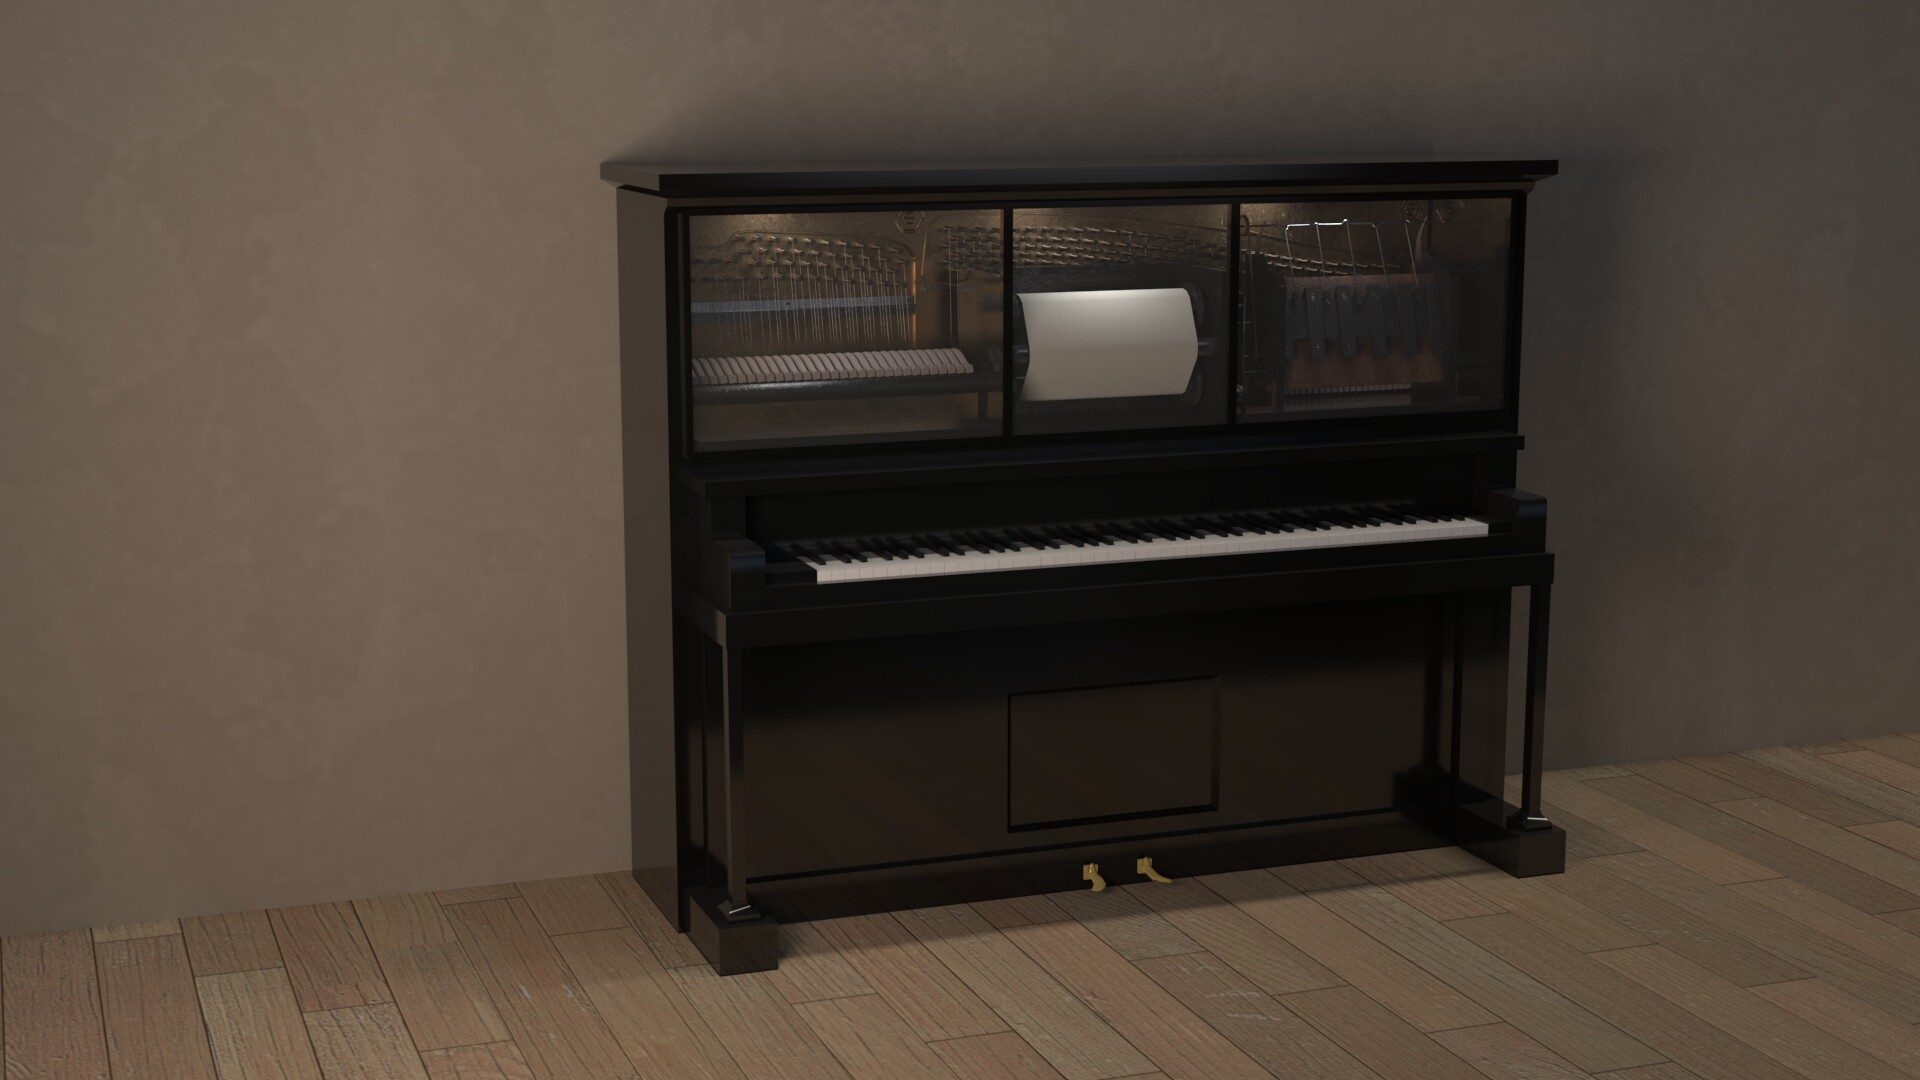 I just learned how to render with Arnold in maya and tried it out on the piano